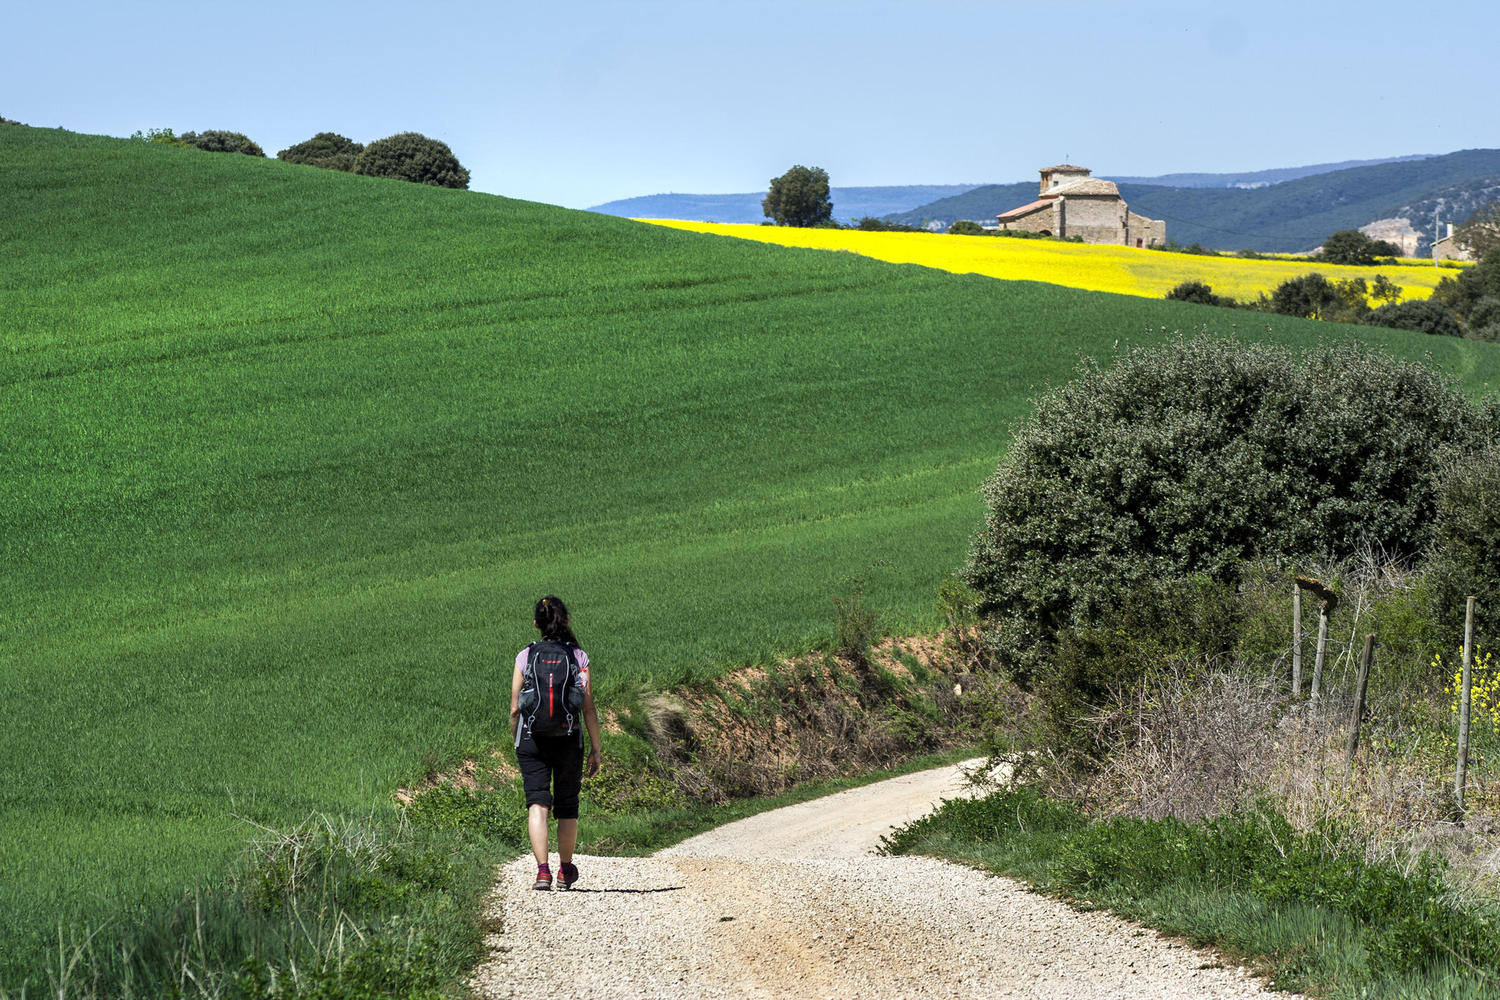 Arriving to the hamlet of Labeaga.